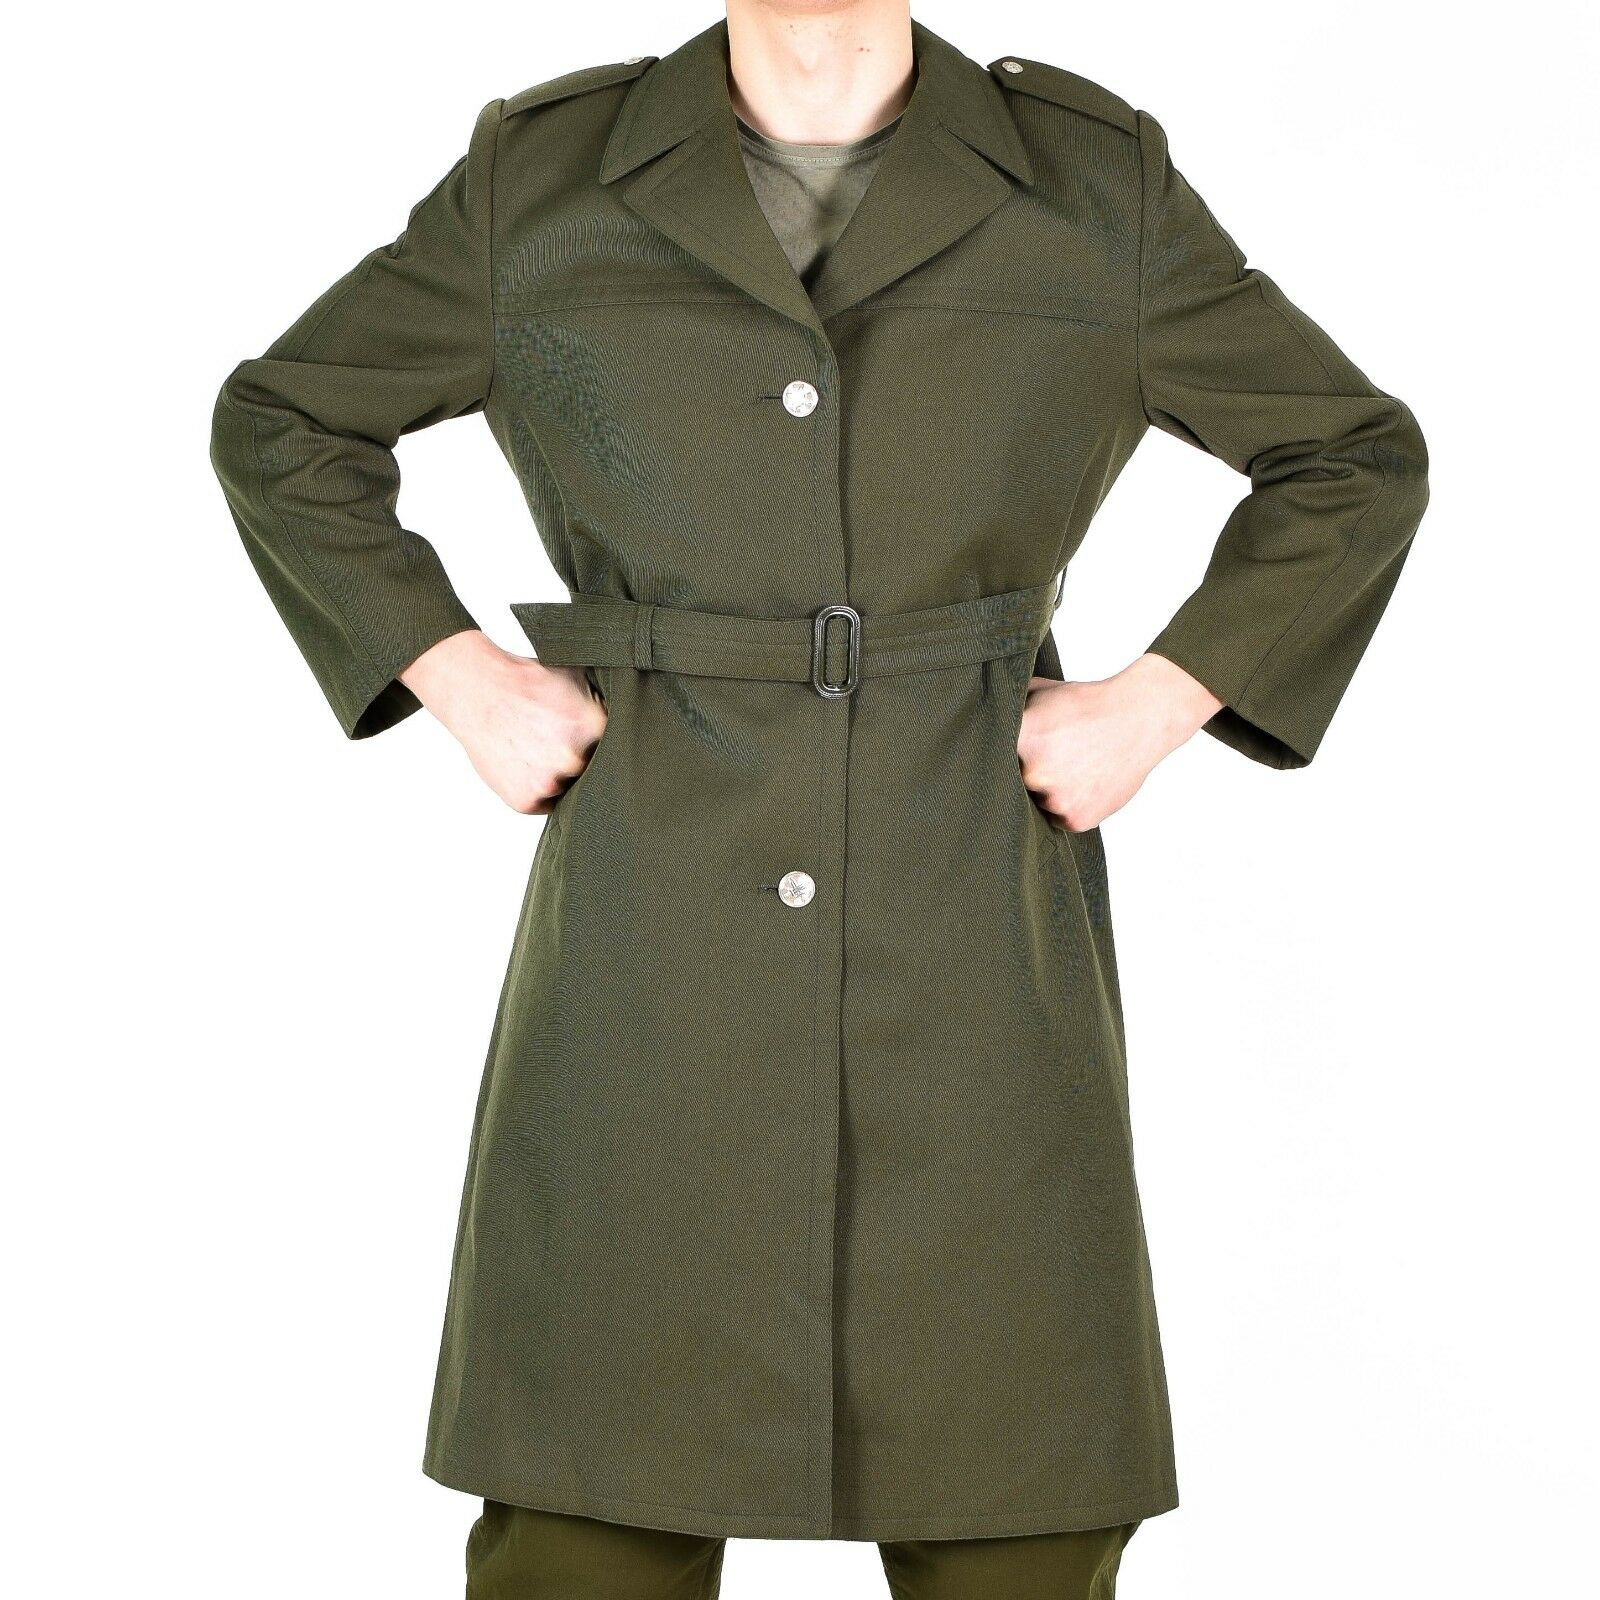 Genuine Czech army coat trenchcoat wool military issue long raincoat olive NEW